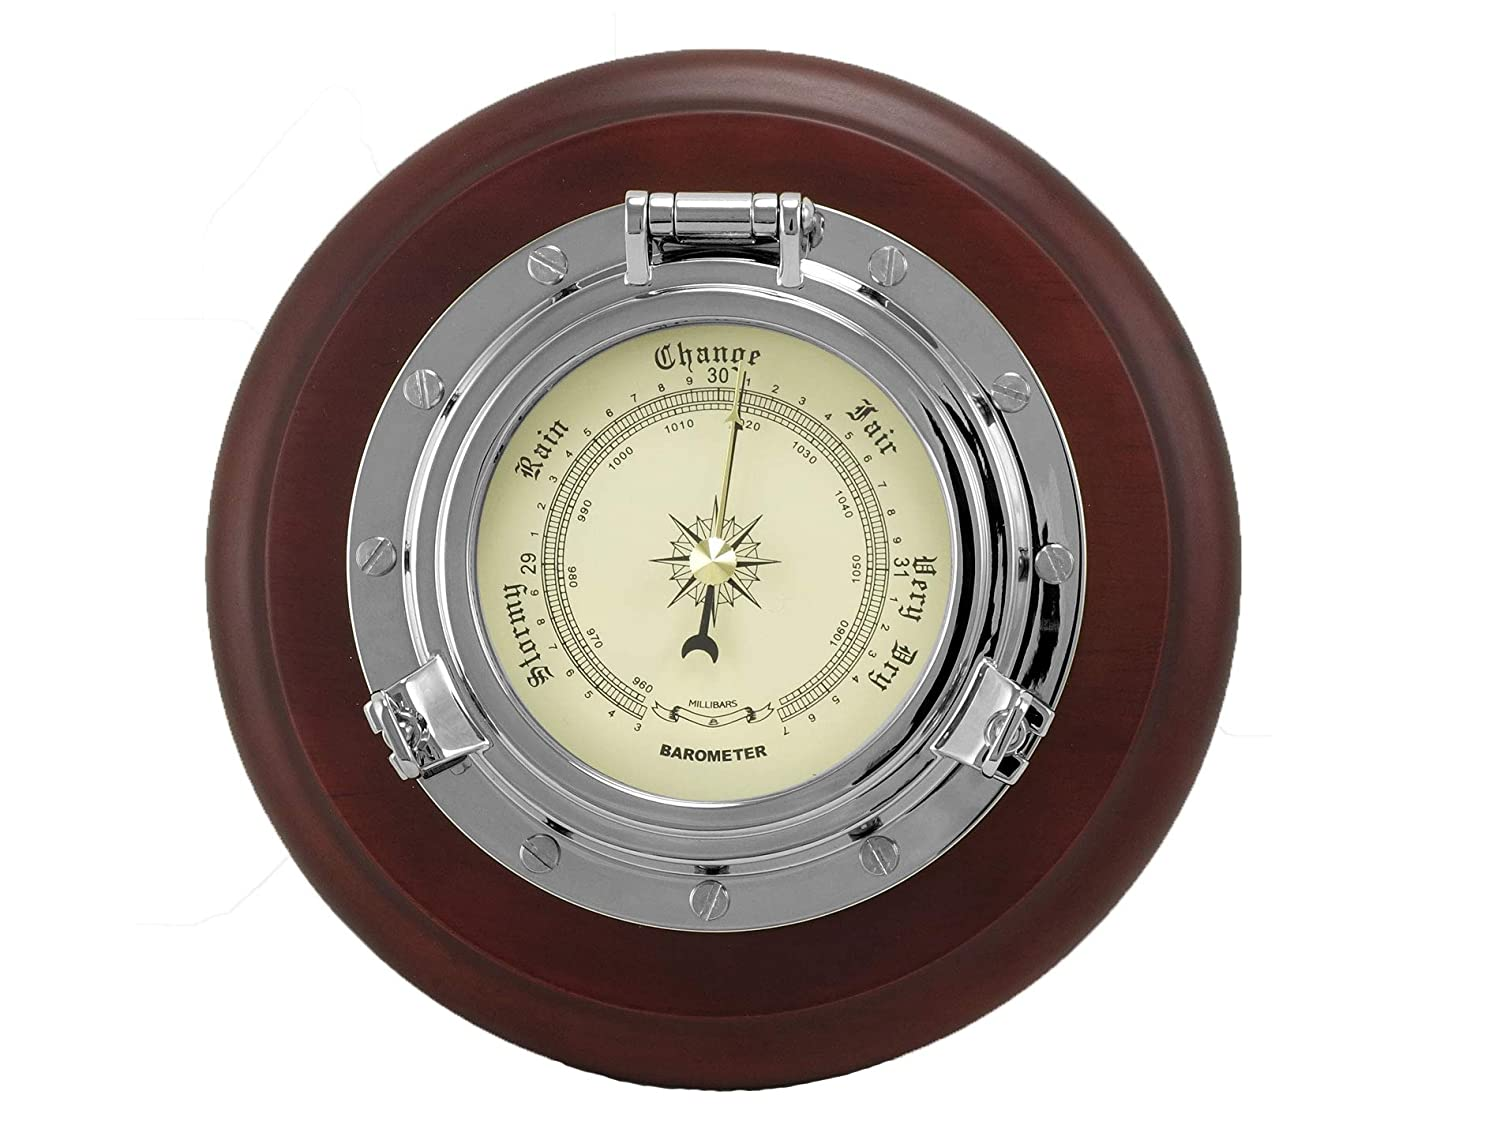 Nautical Porthole Chrome Precision Barometer with solid wood base quartz clock movement - Matt finish - Five Oceans BC-3986